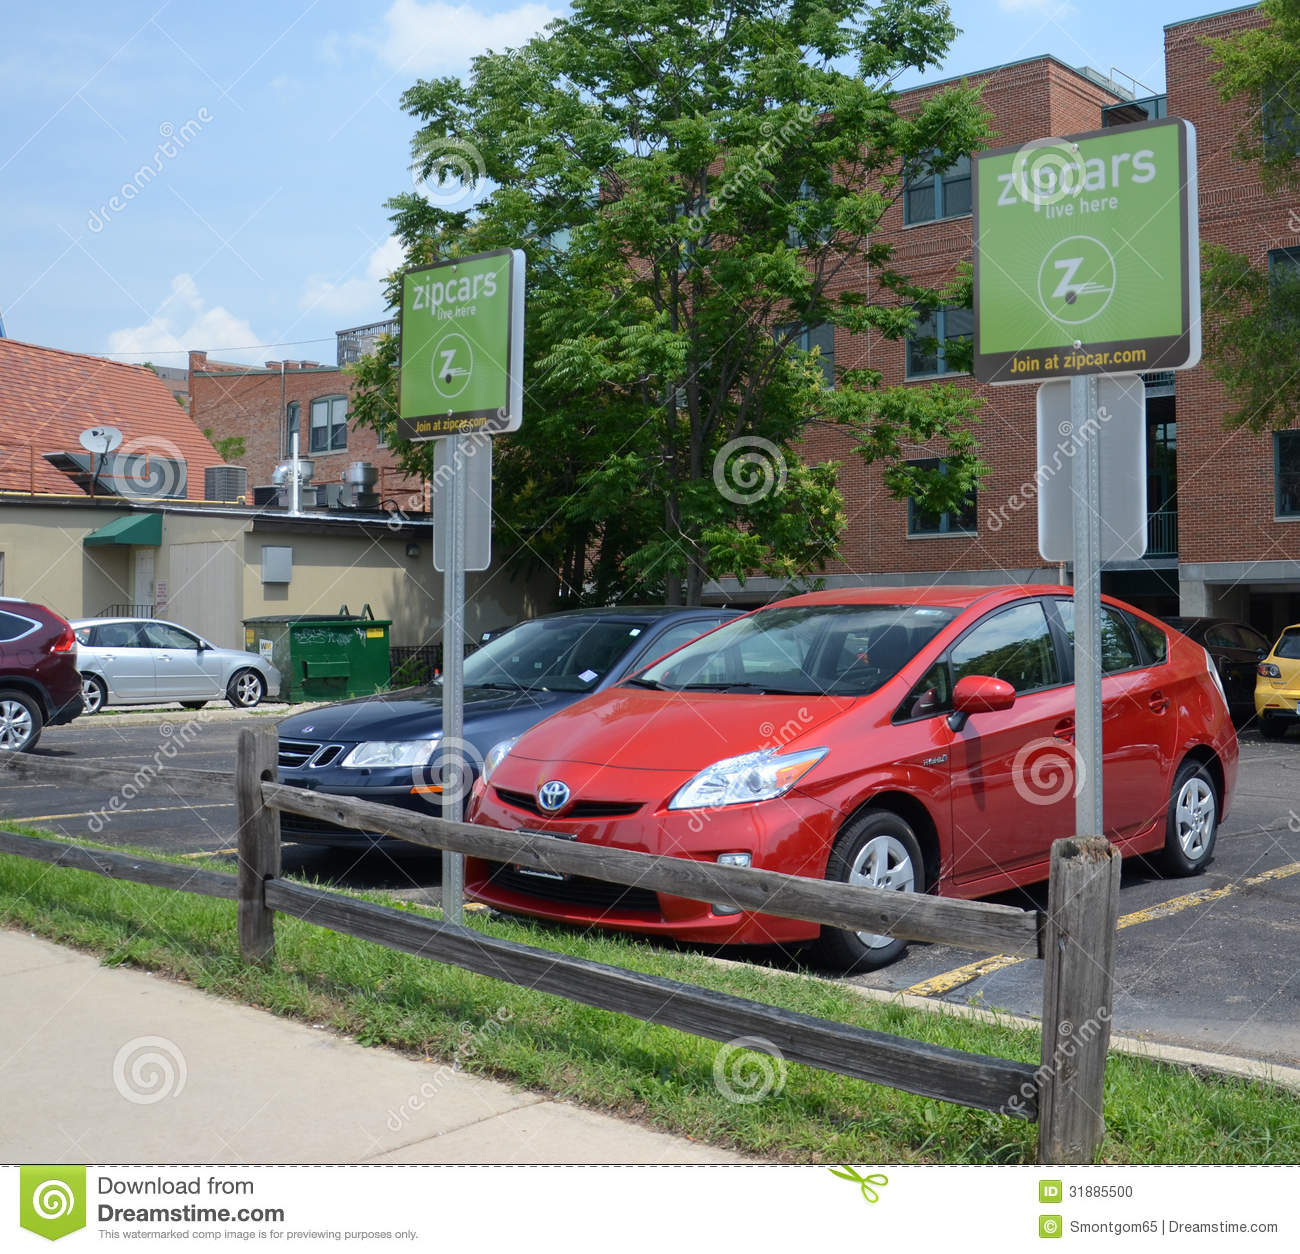 Zipcar Lot In Ann Arbor Editorial Image. Image Of